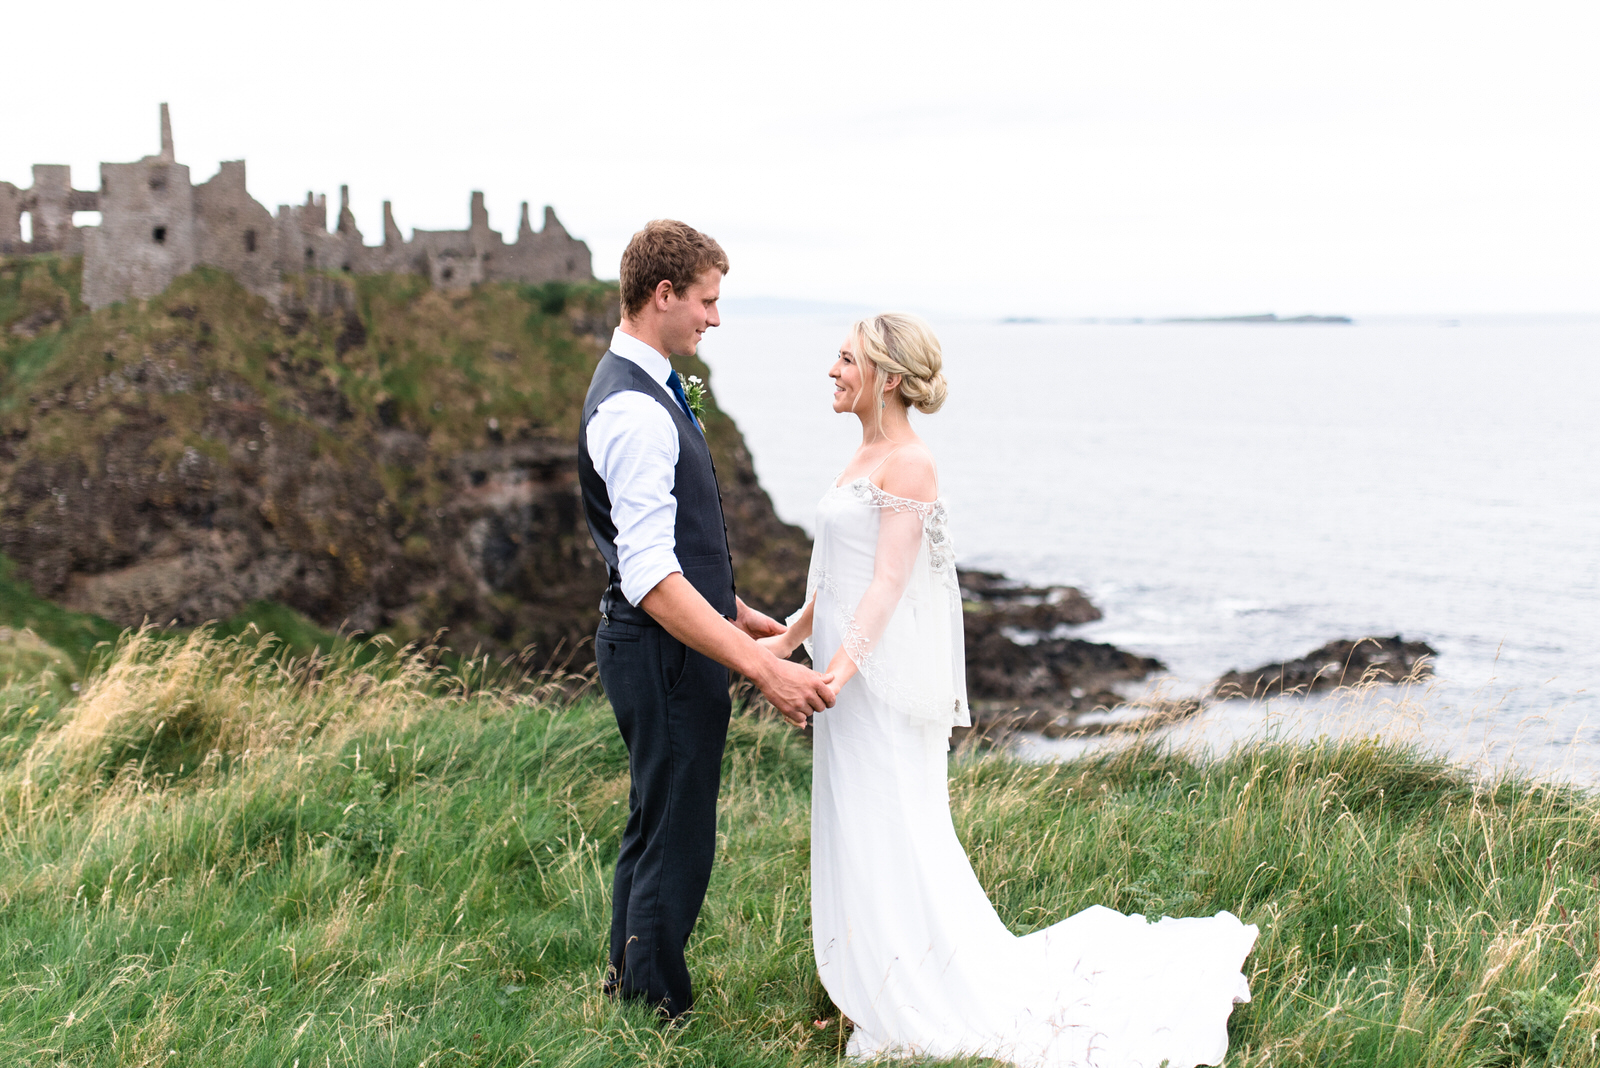 dunluce castle elopement in ireland in sage and white (23)-1.jpg